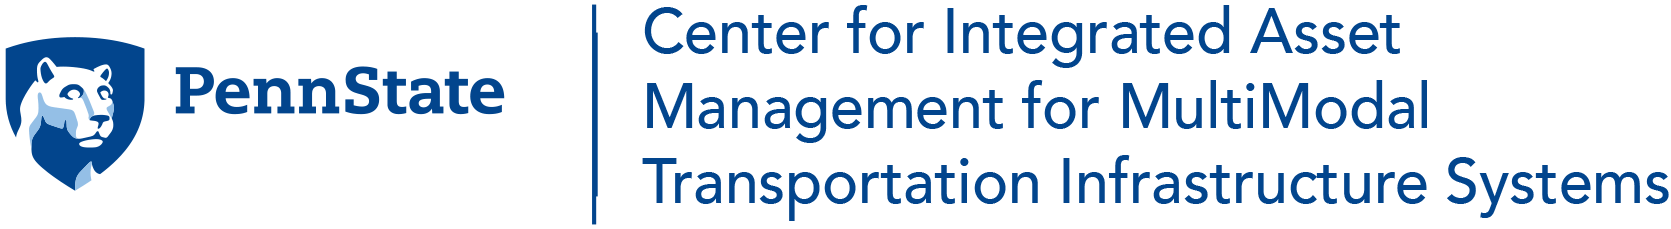 Center for Integrated Asset Management for Multimodal Transportation Infrastructure Systems